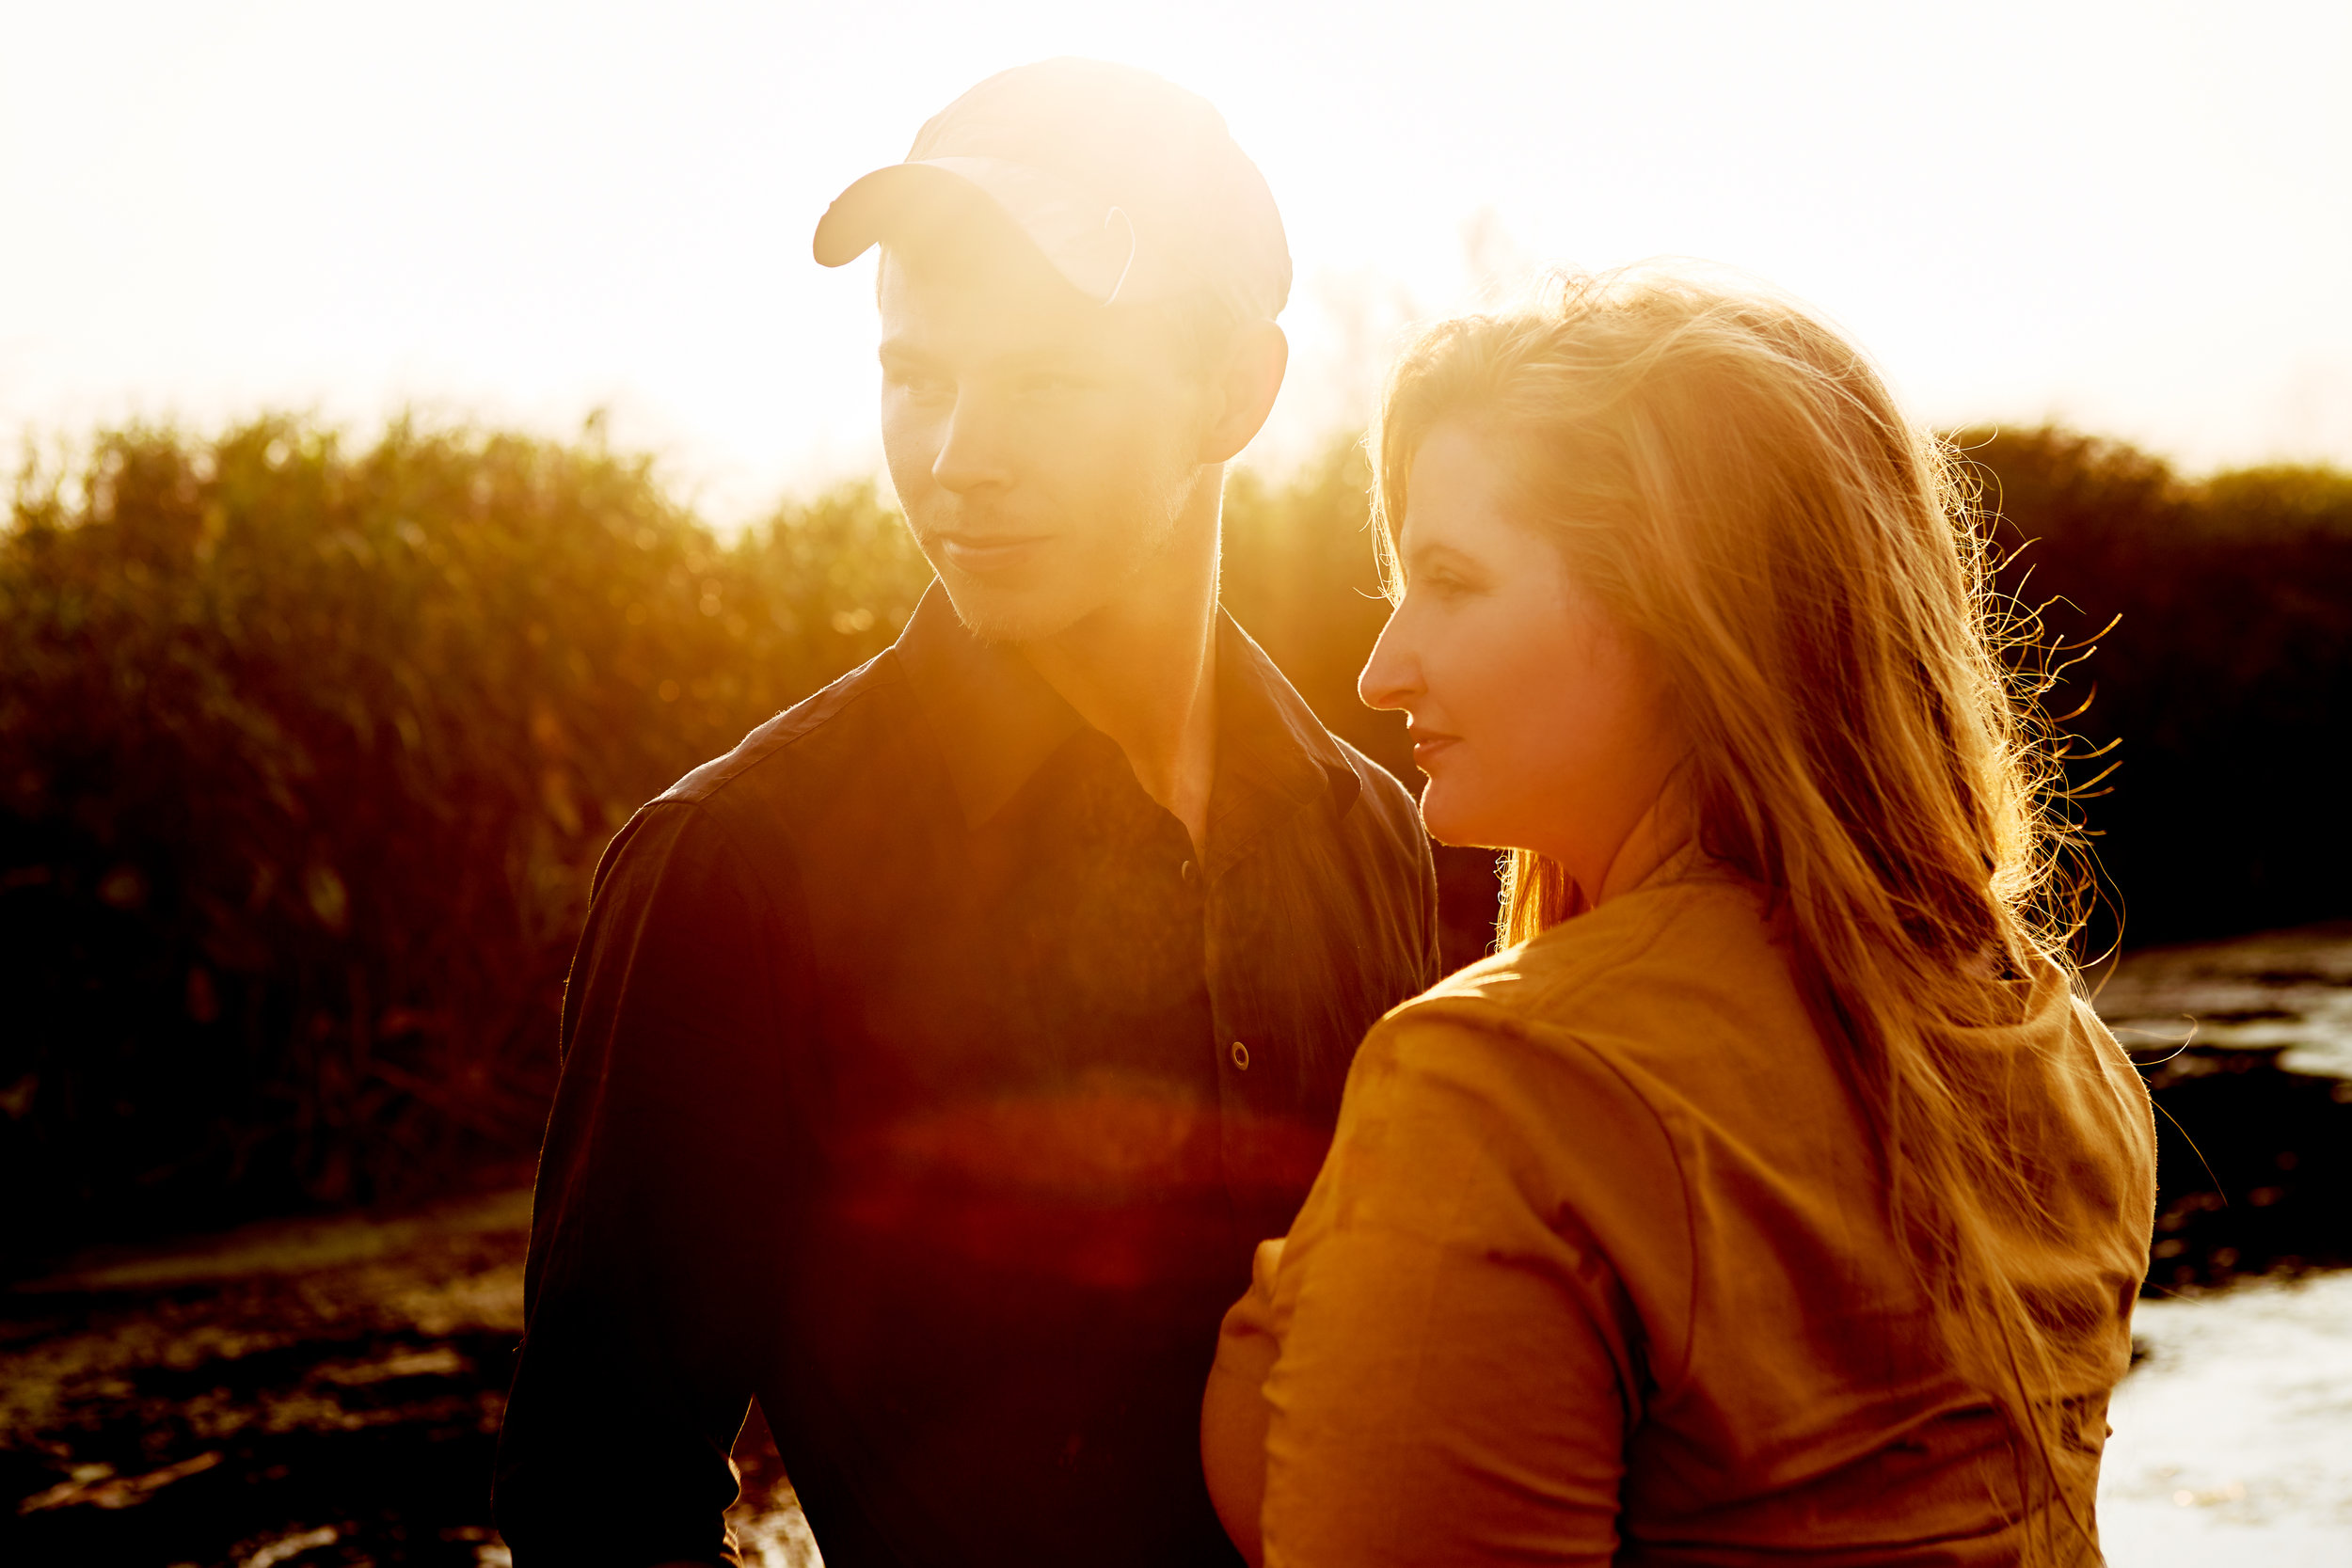 Mississippi River Engagement Photos - Camouflage // Labrador // Mud and Guns // De SotoEngagement Blog Post